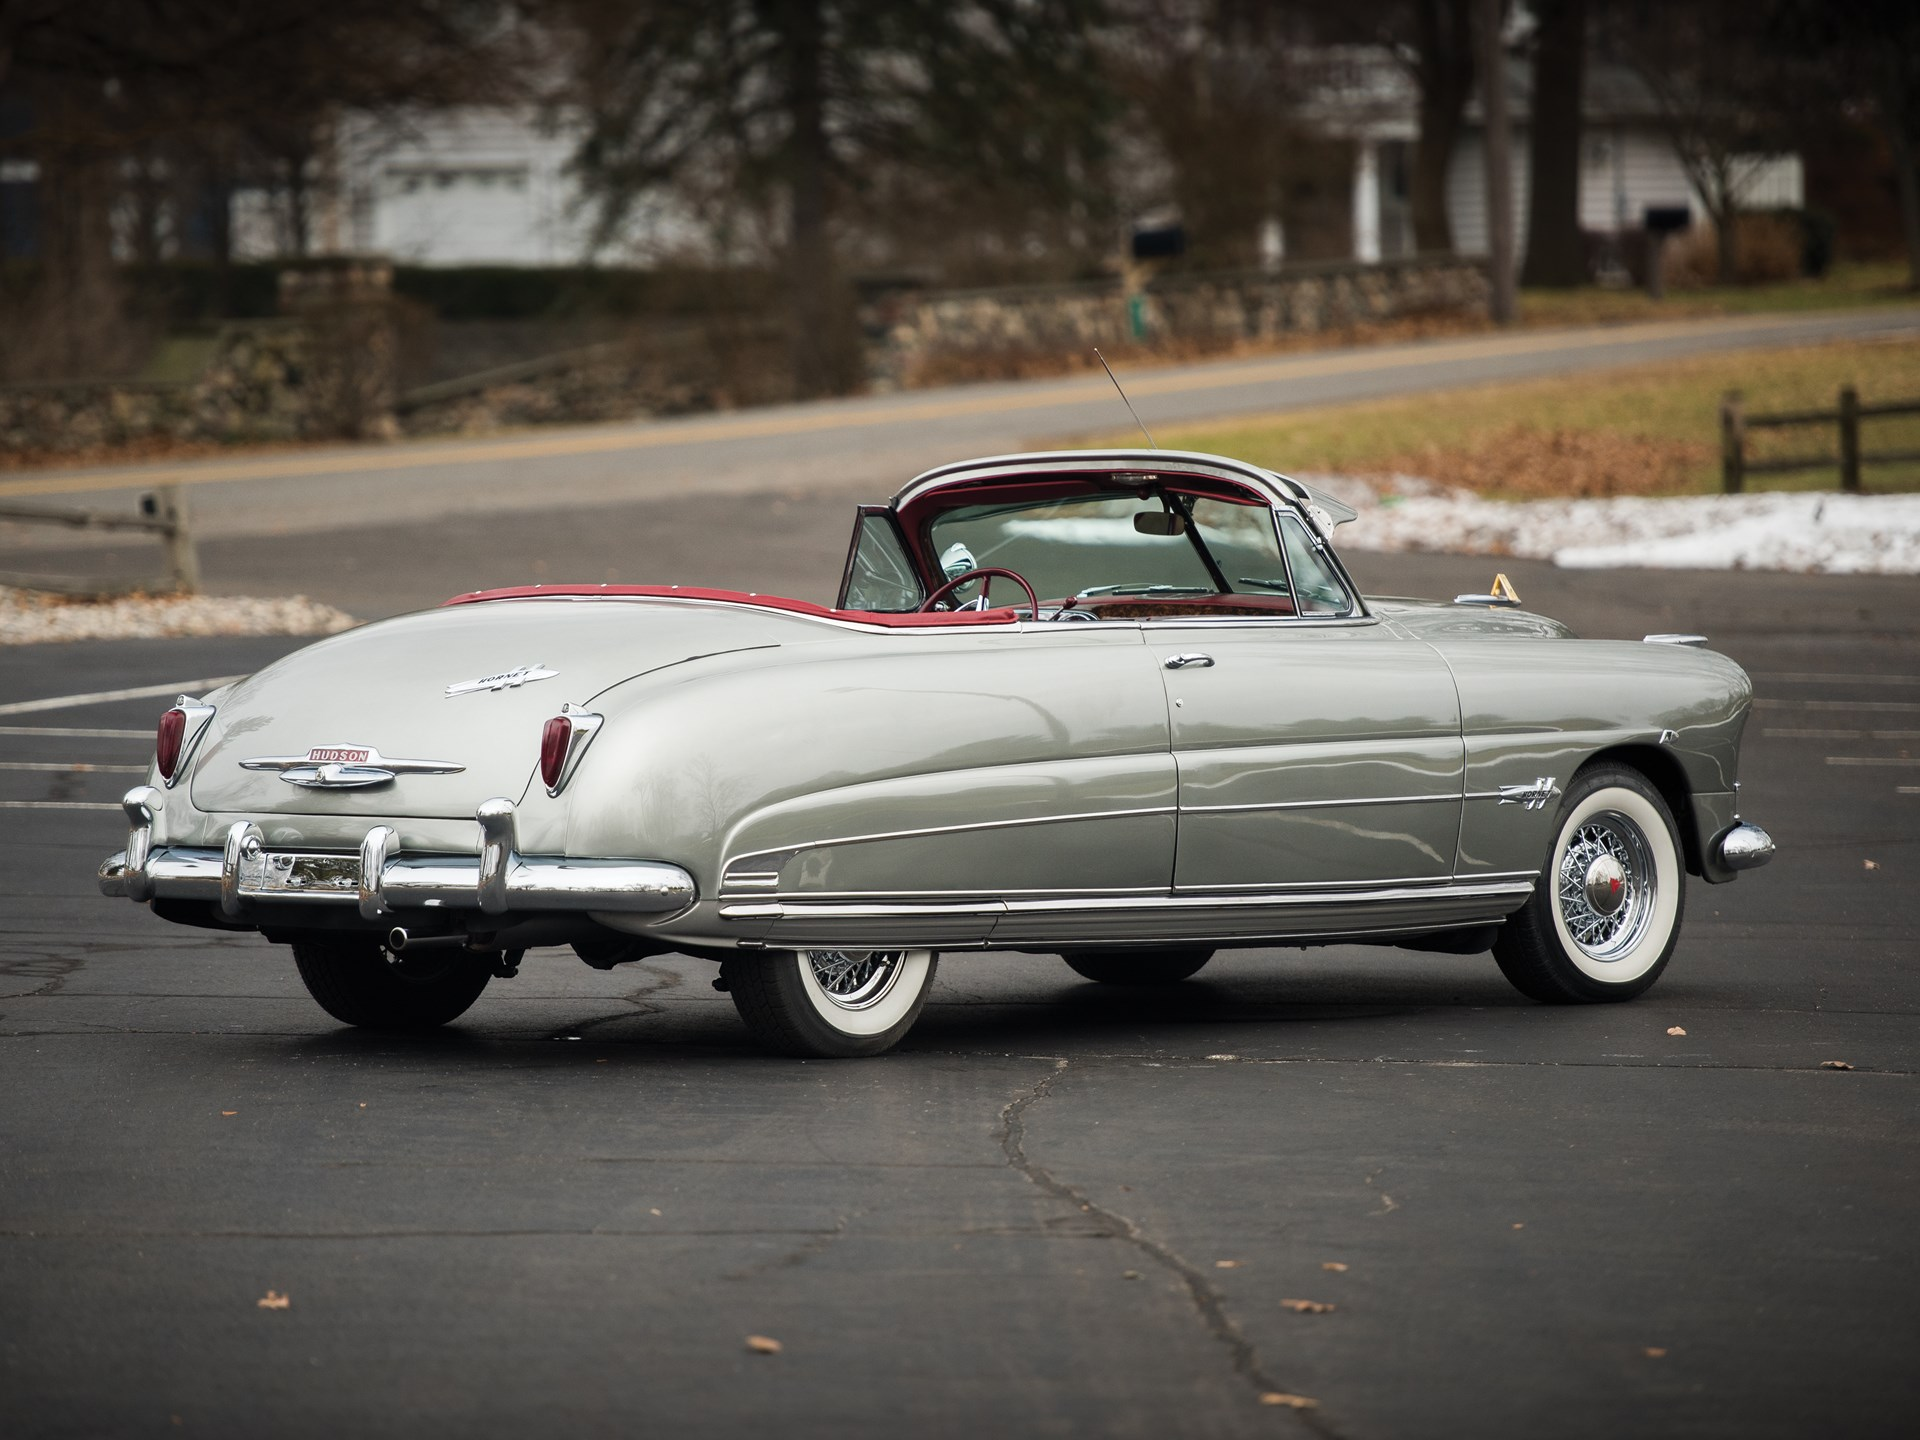 1951 Desoto Wiring Diagram Library Starting Circuit For The 1941 51 Hudson All Models Rm Sothebys Hornet Convertible Brougham Amelia Fabulous